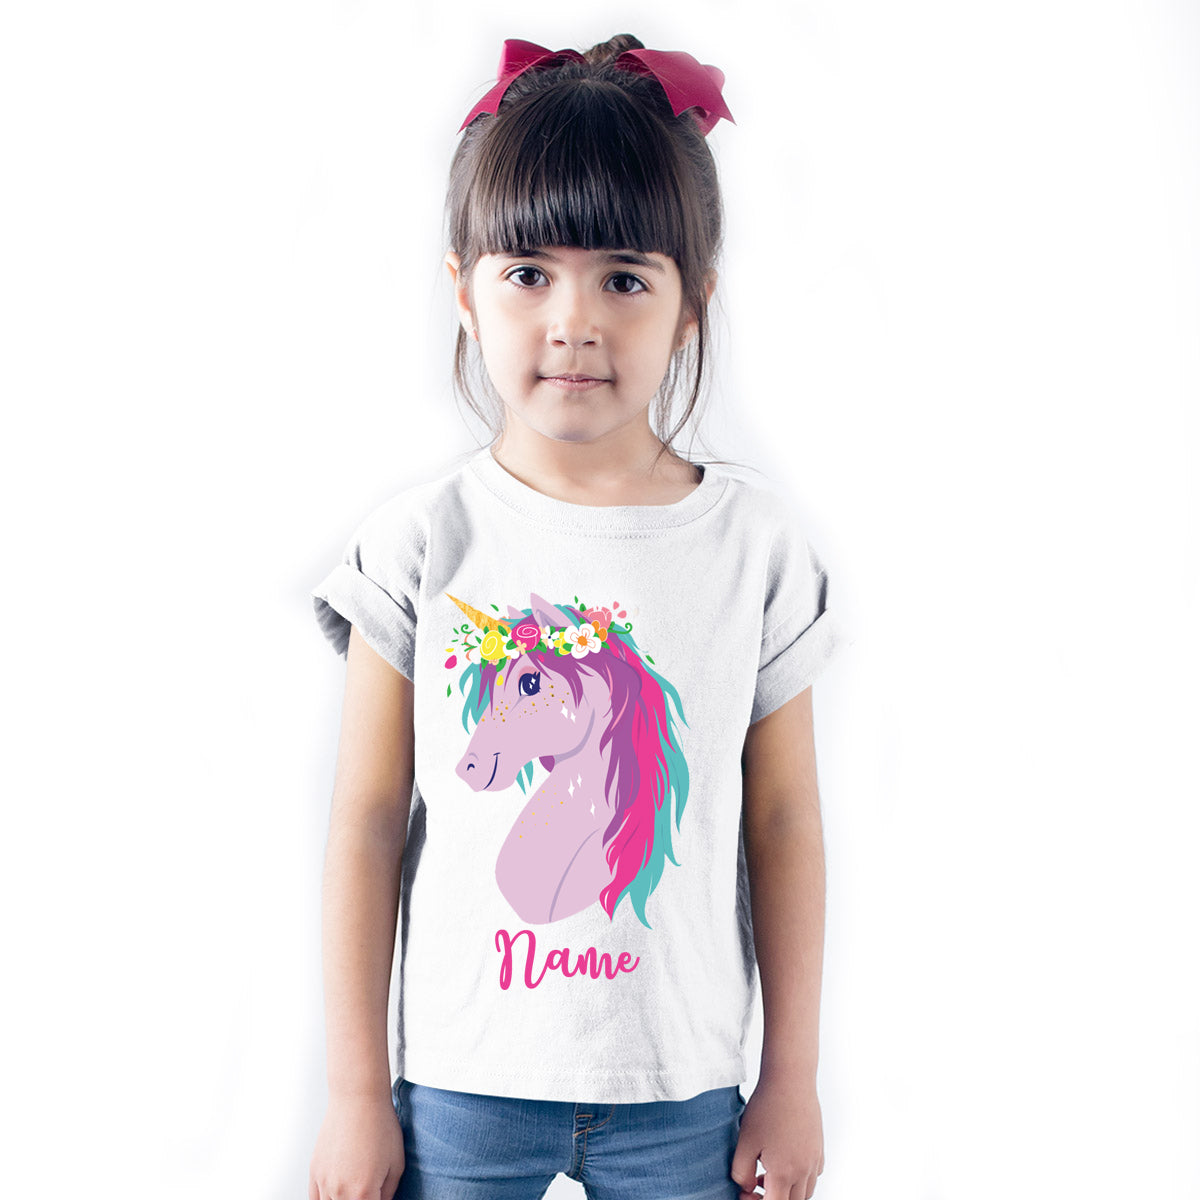 Sprinklecart Ideal Unicorn Personalized Name Printed Poly-Cotton T Shirt for Kids (White)